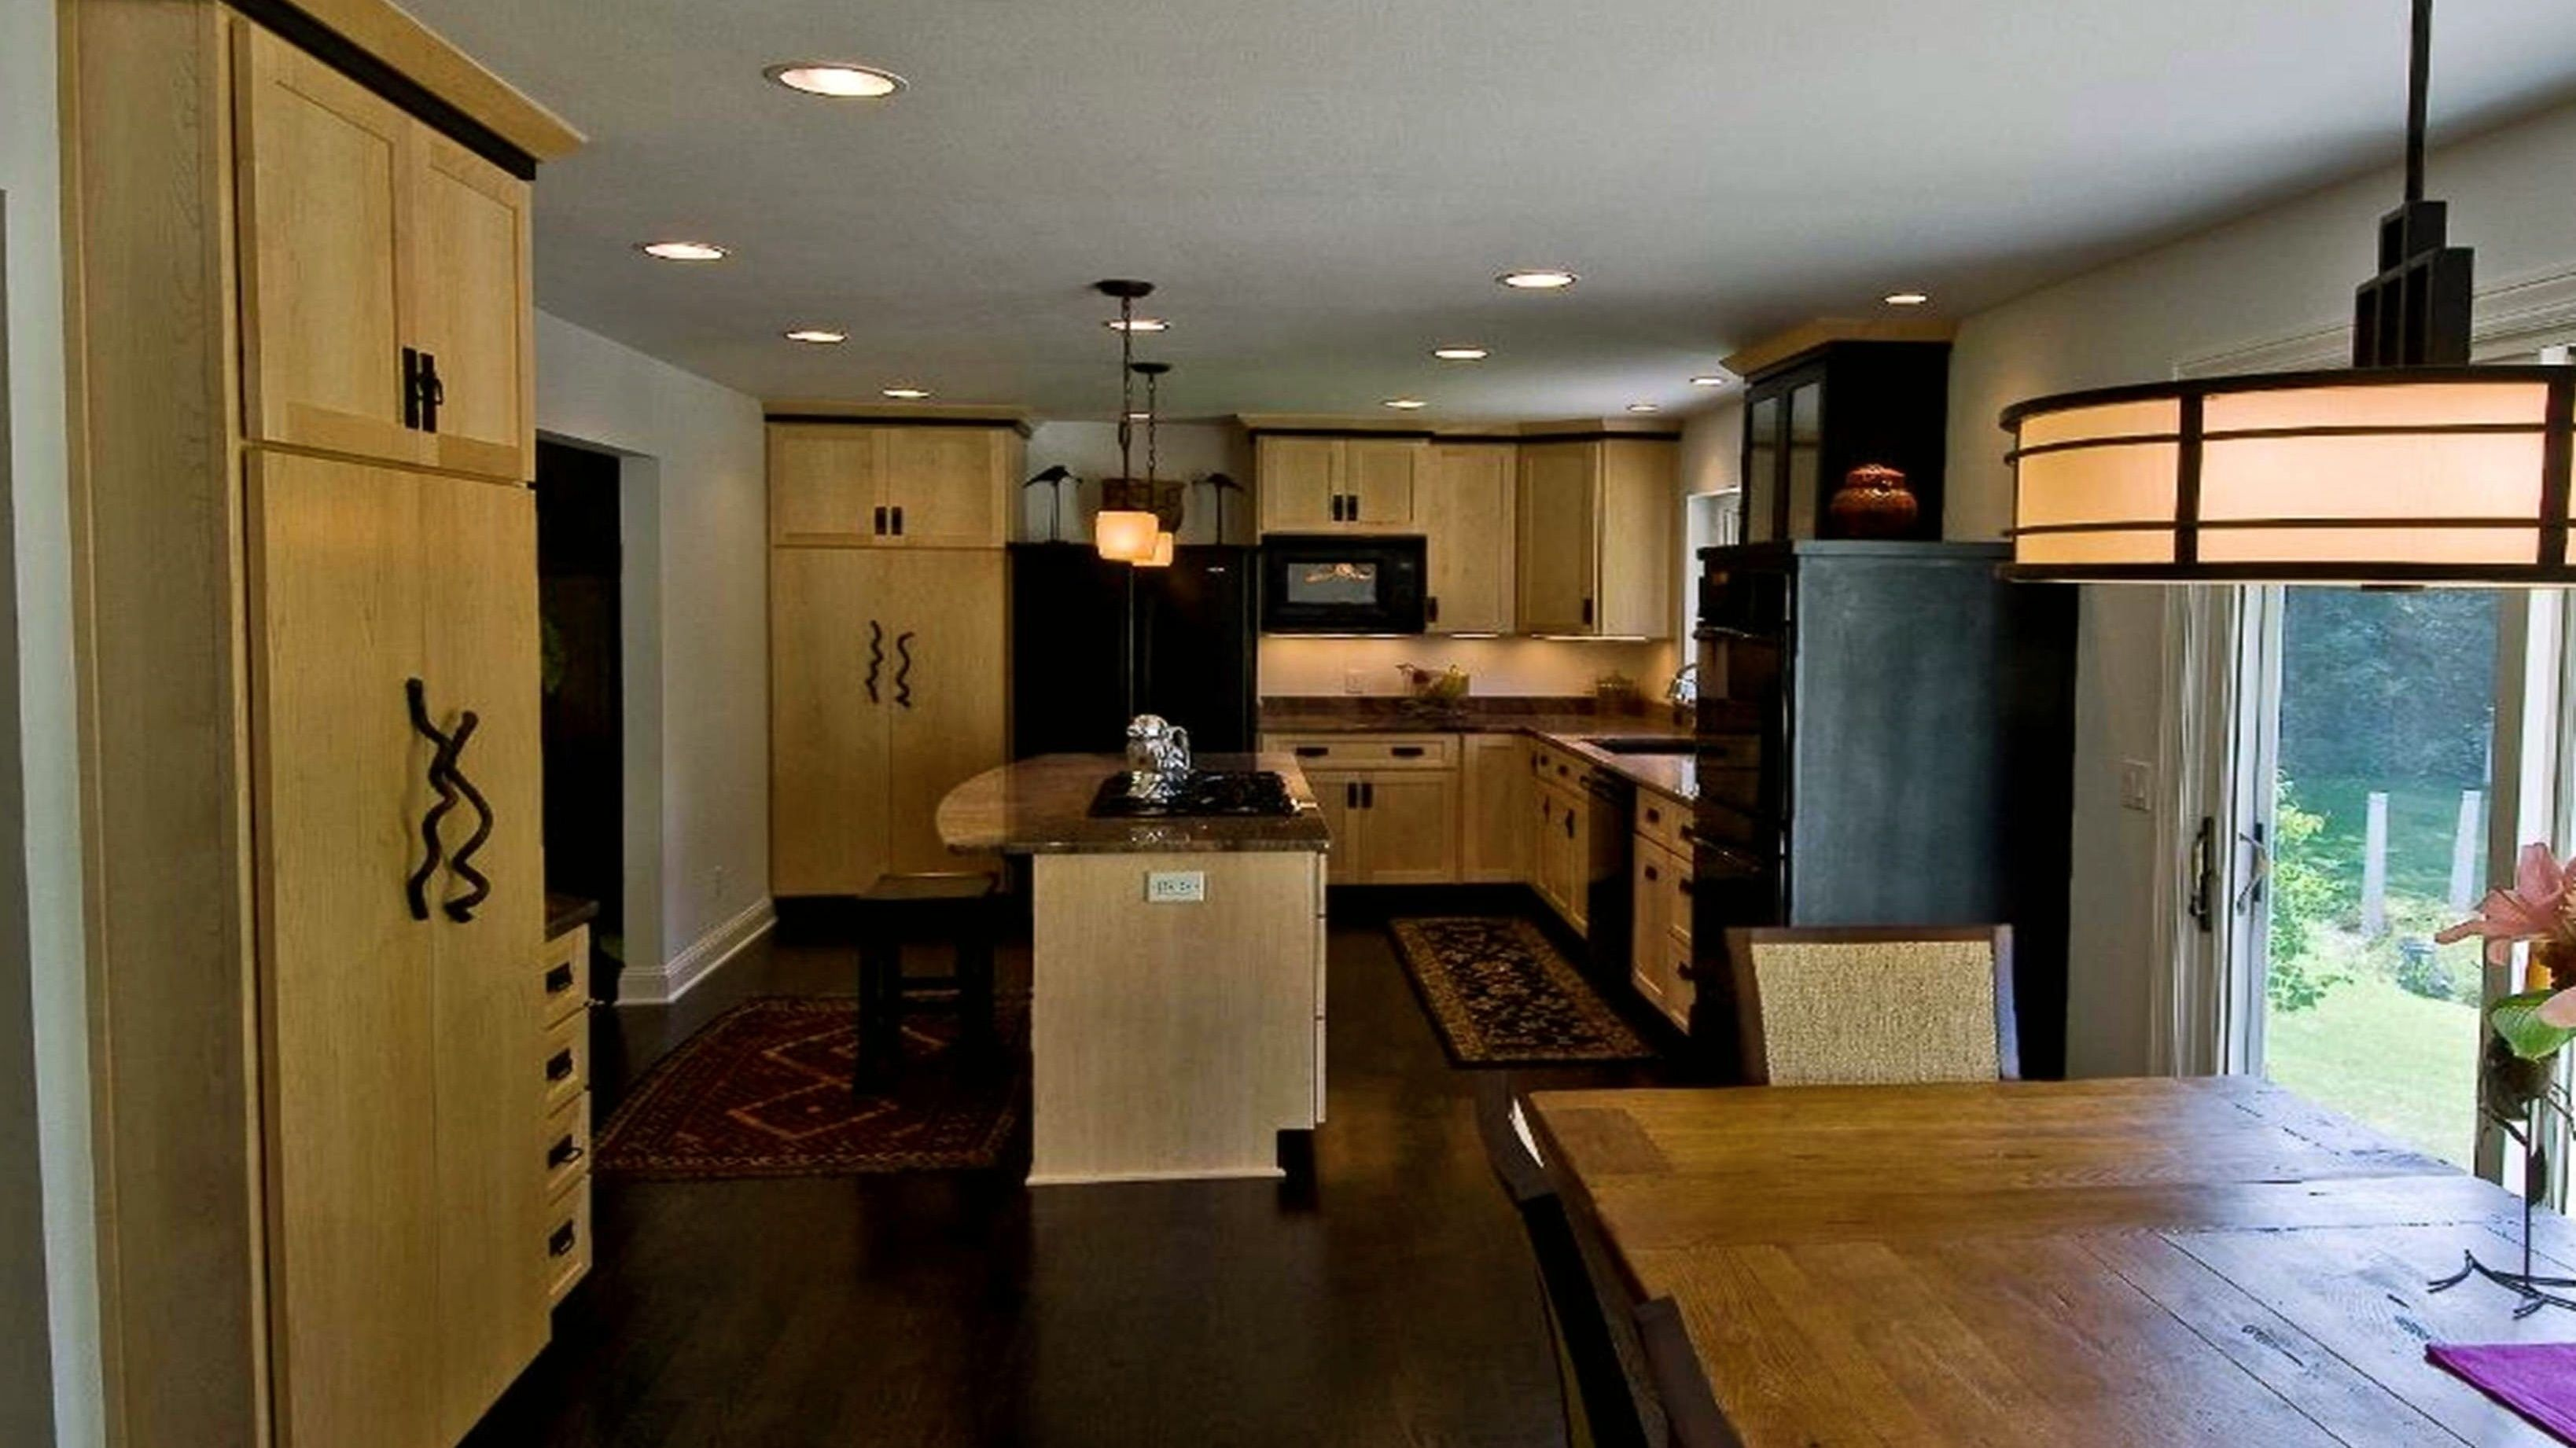 Walnut floors, maple cabinets, dark countertops, soft ... on Maple Cabinets With Black Countertops  id=87003